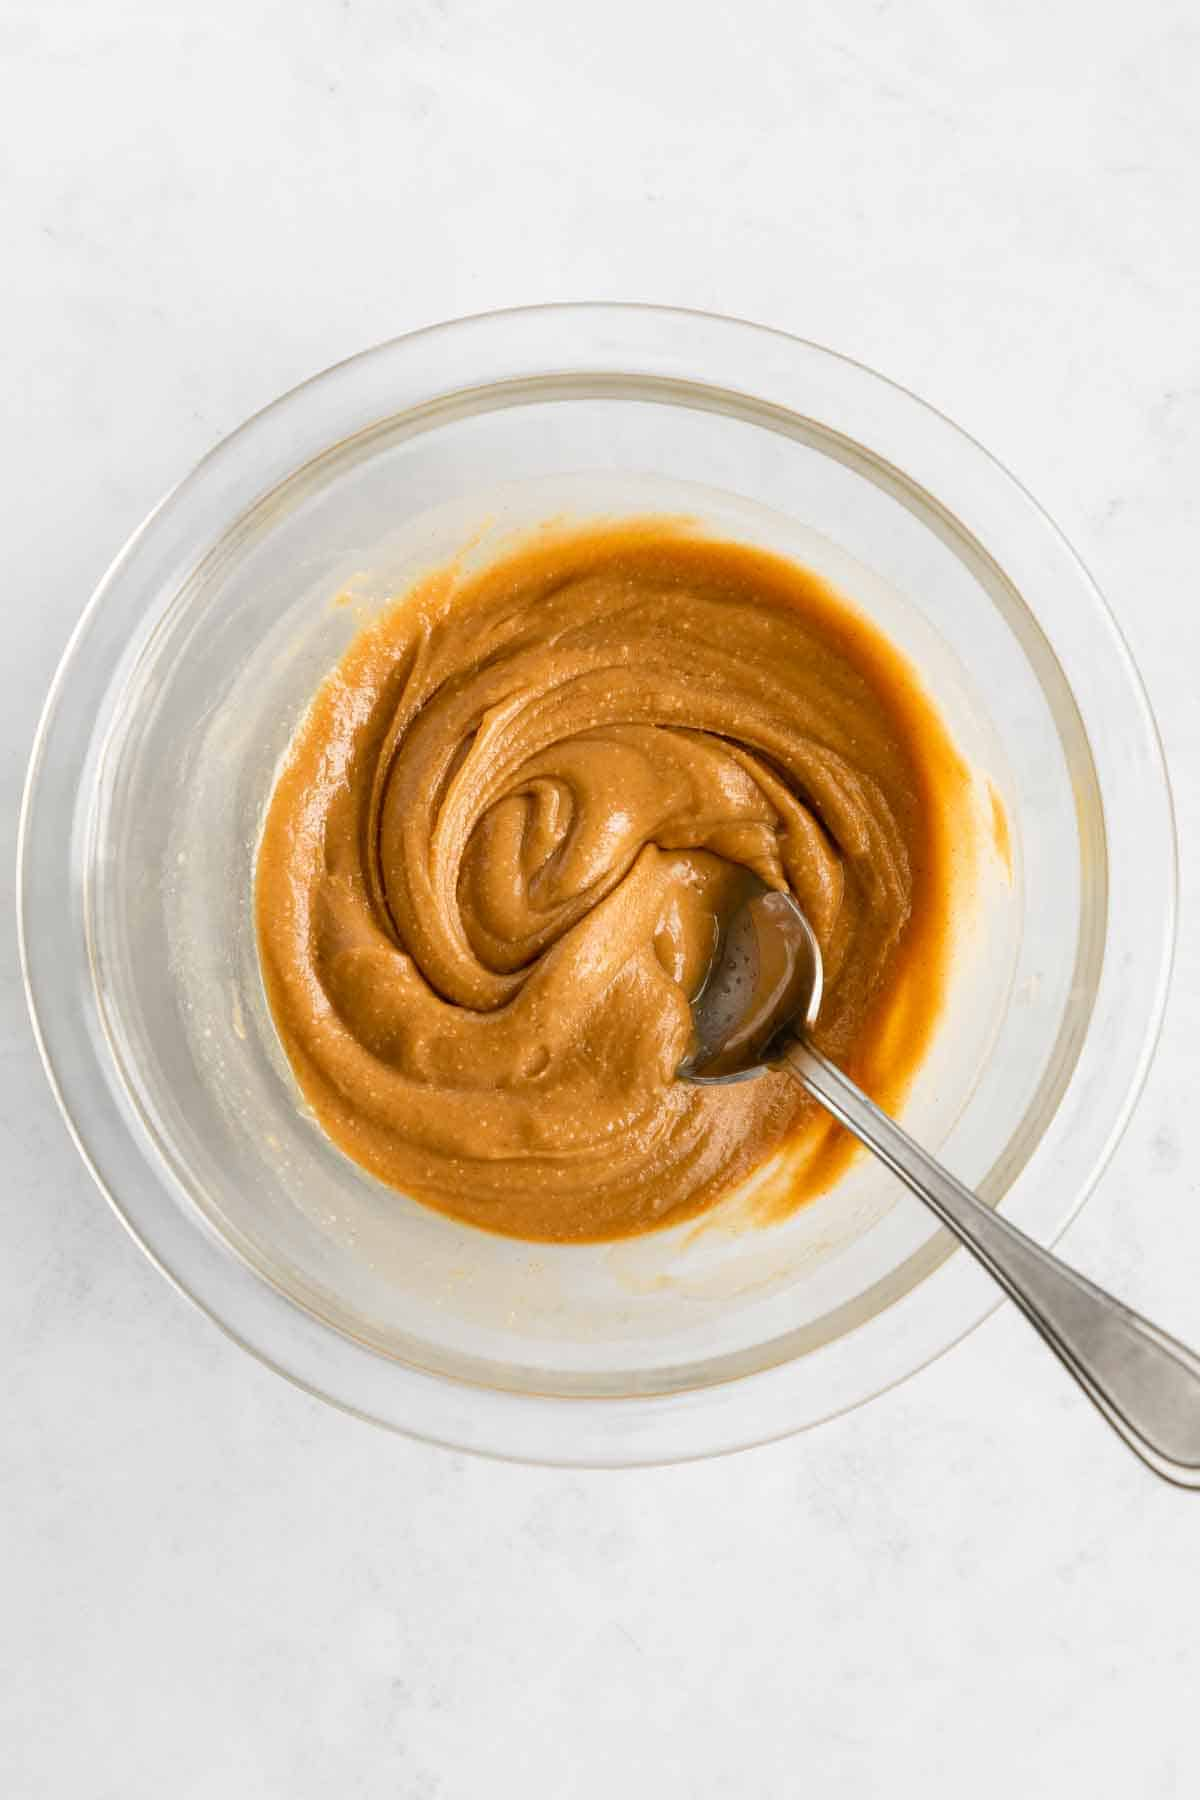 a spoon mixing peanut butter and maple syrup in a glass mixing bowl